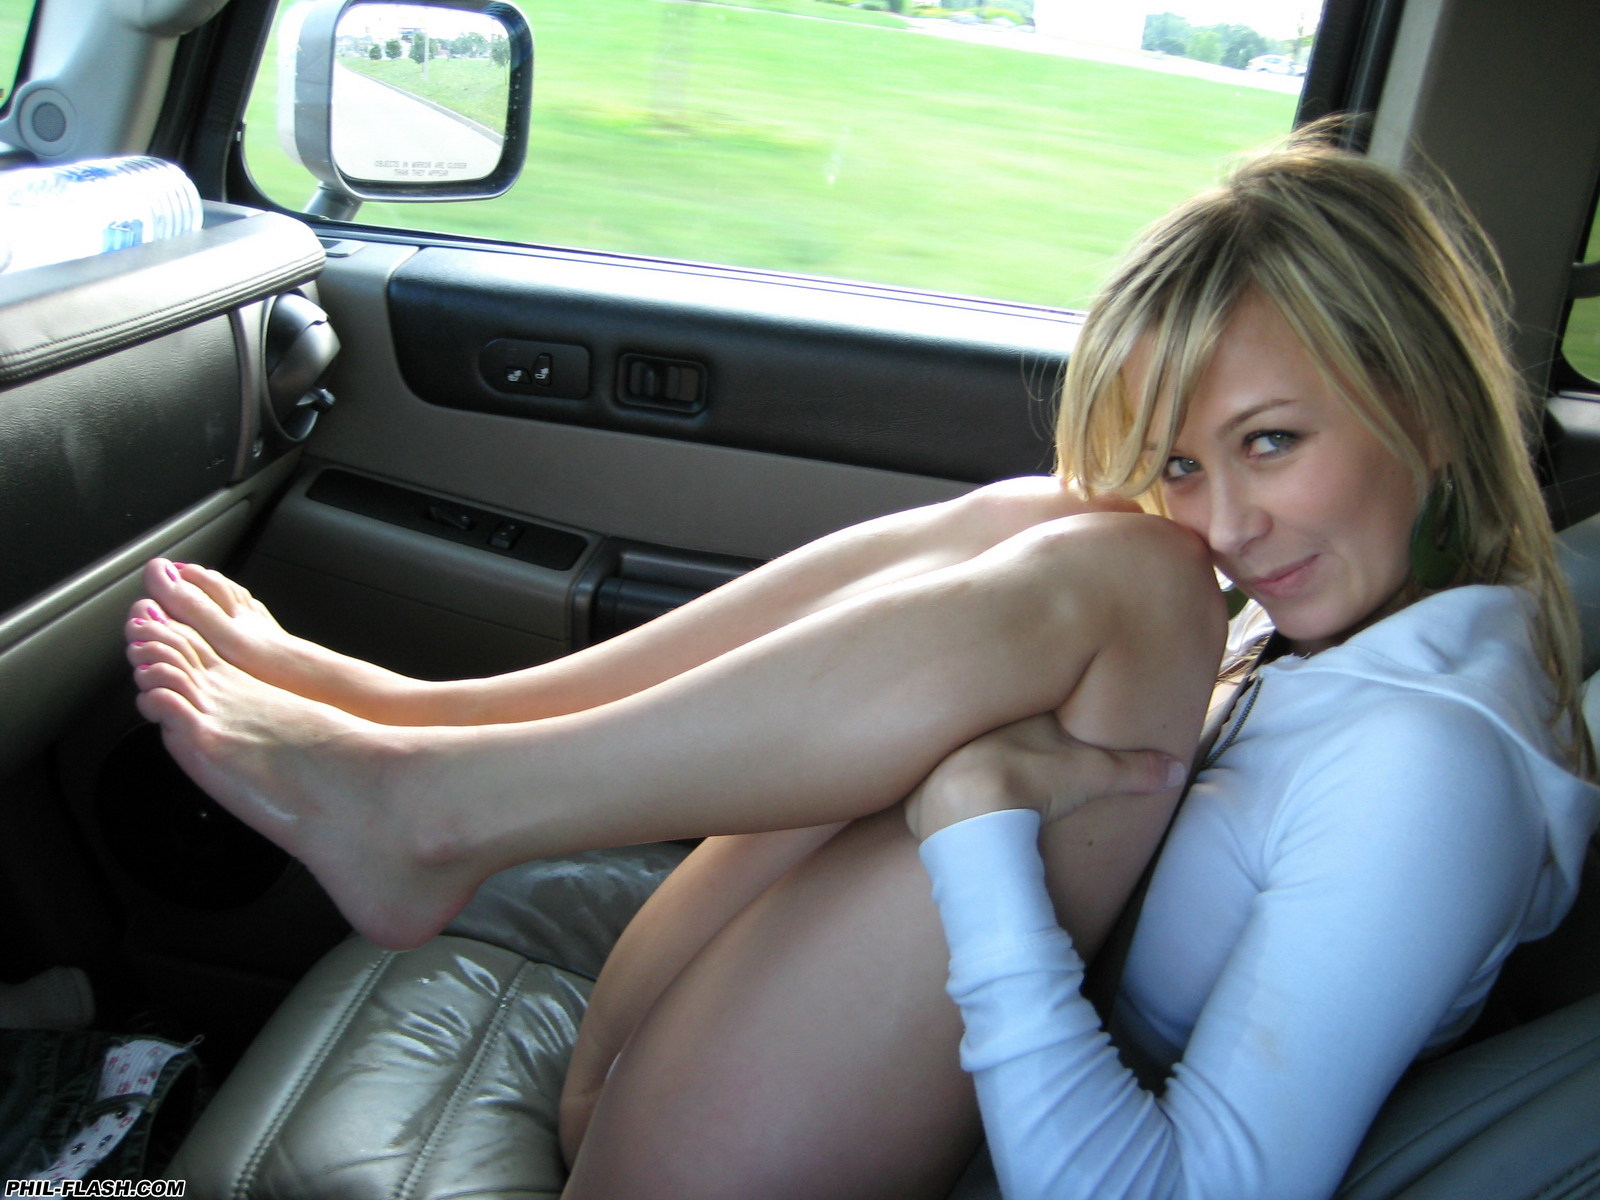 kasia-young-blonde-nude-wet-carwash-phil-flash-30